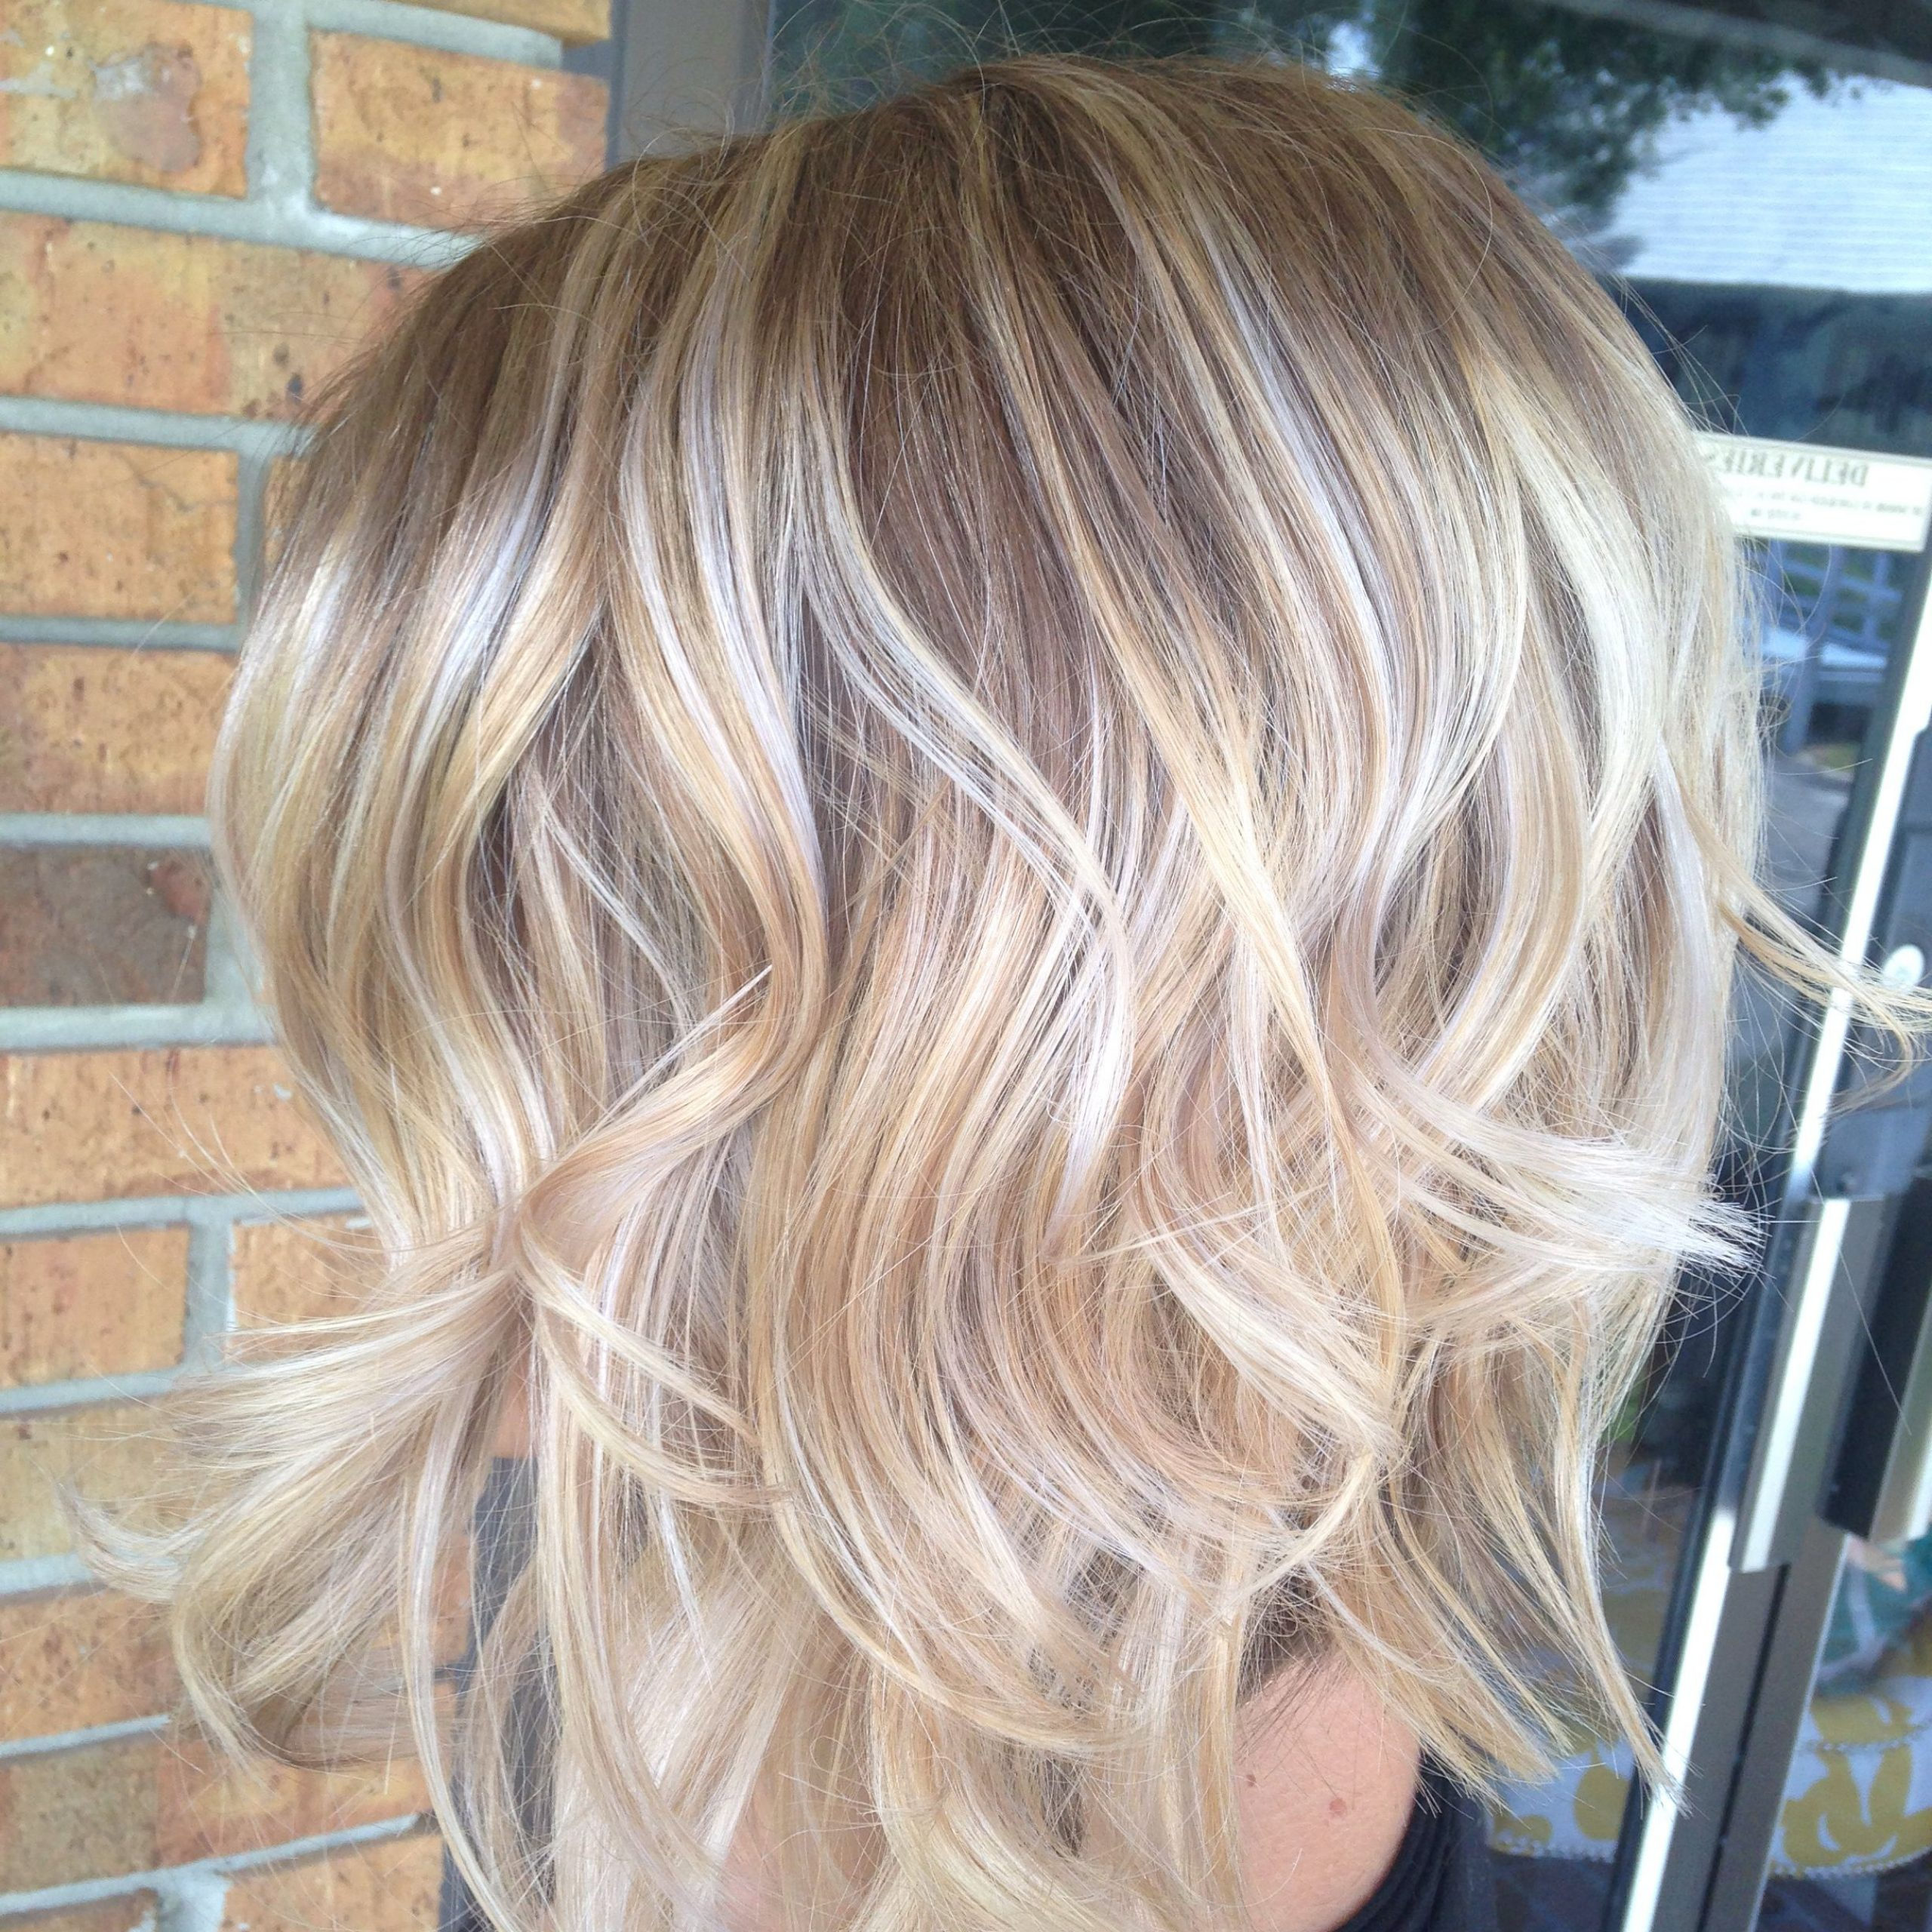 Hairstyles : Ashy Blonde Pixie Haircuts With A Messy Touch With Regard To Recent Delicate Light Blonde Shag Haircuts (View 13 of 20)